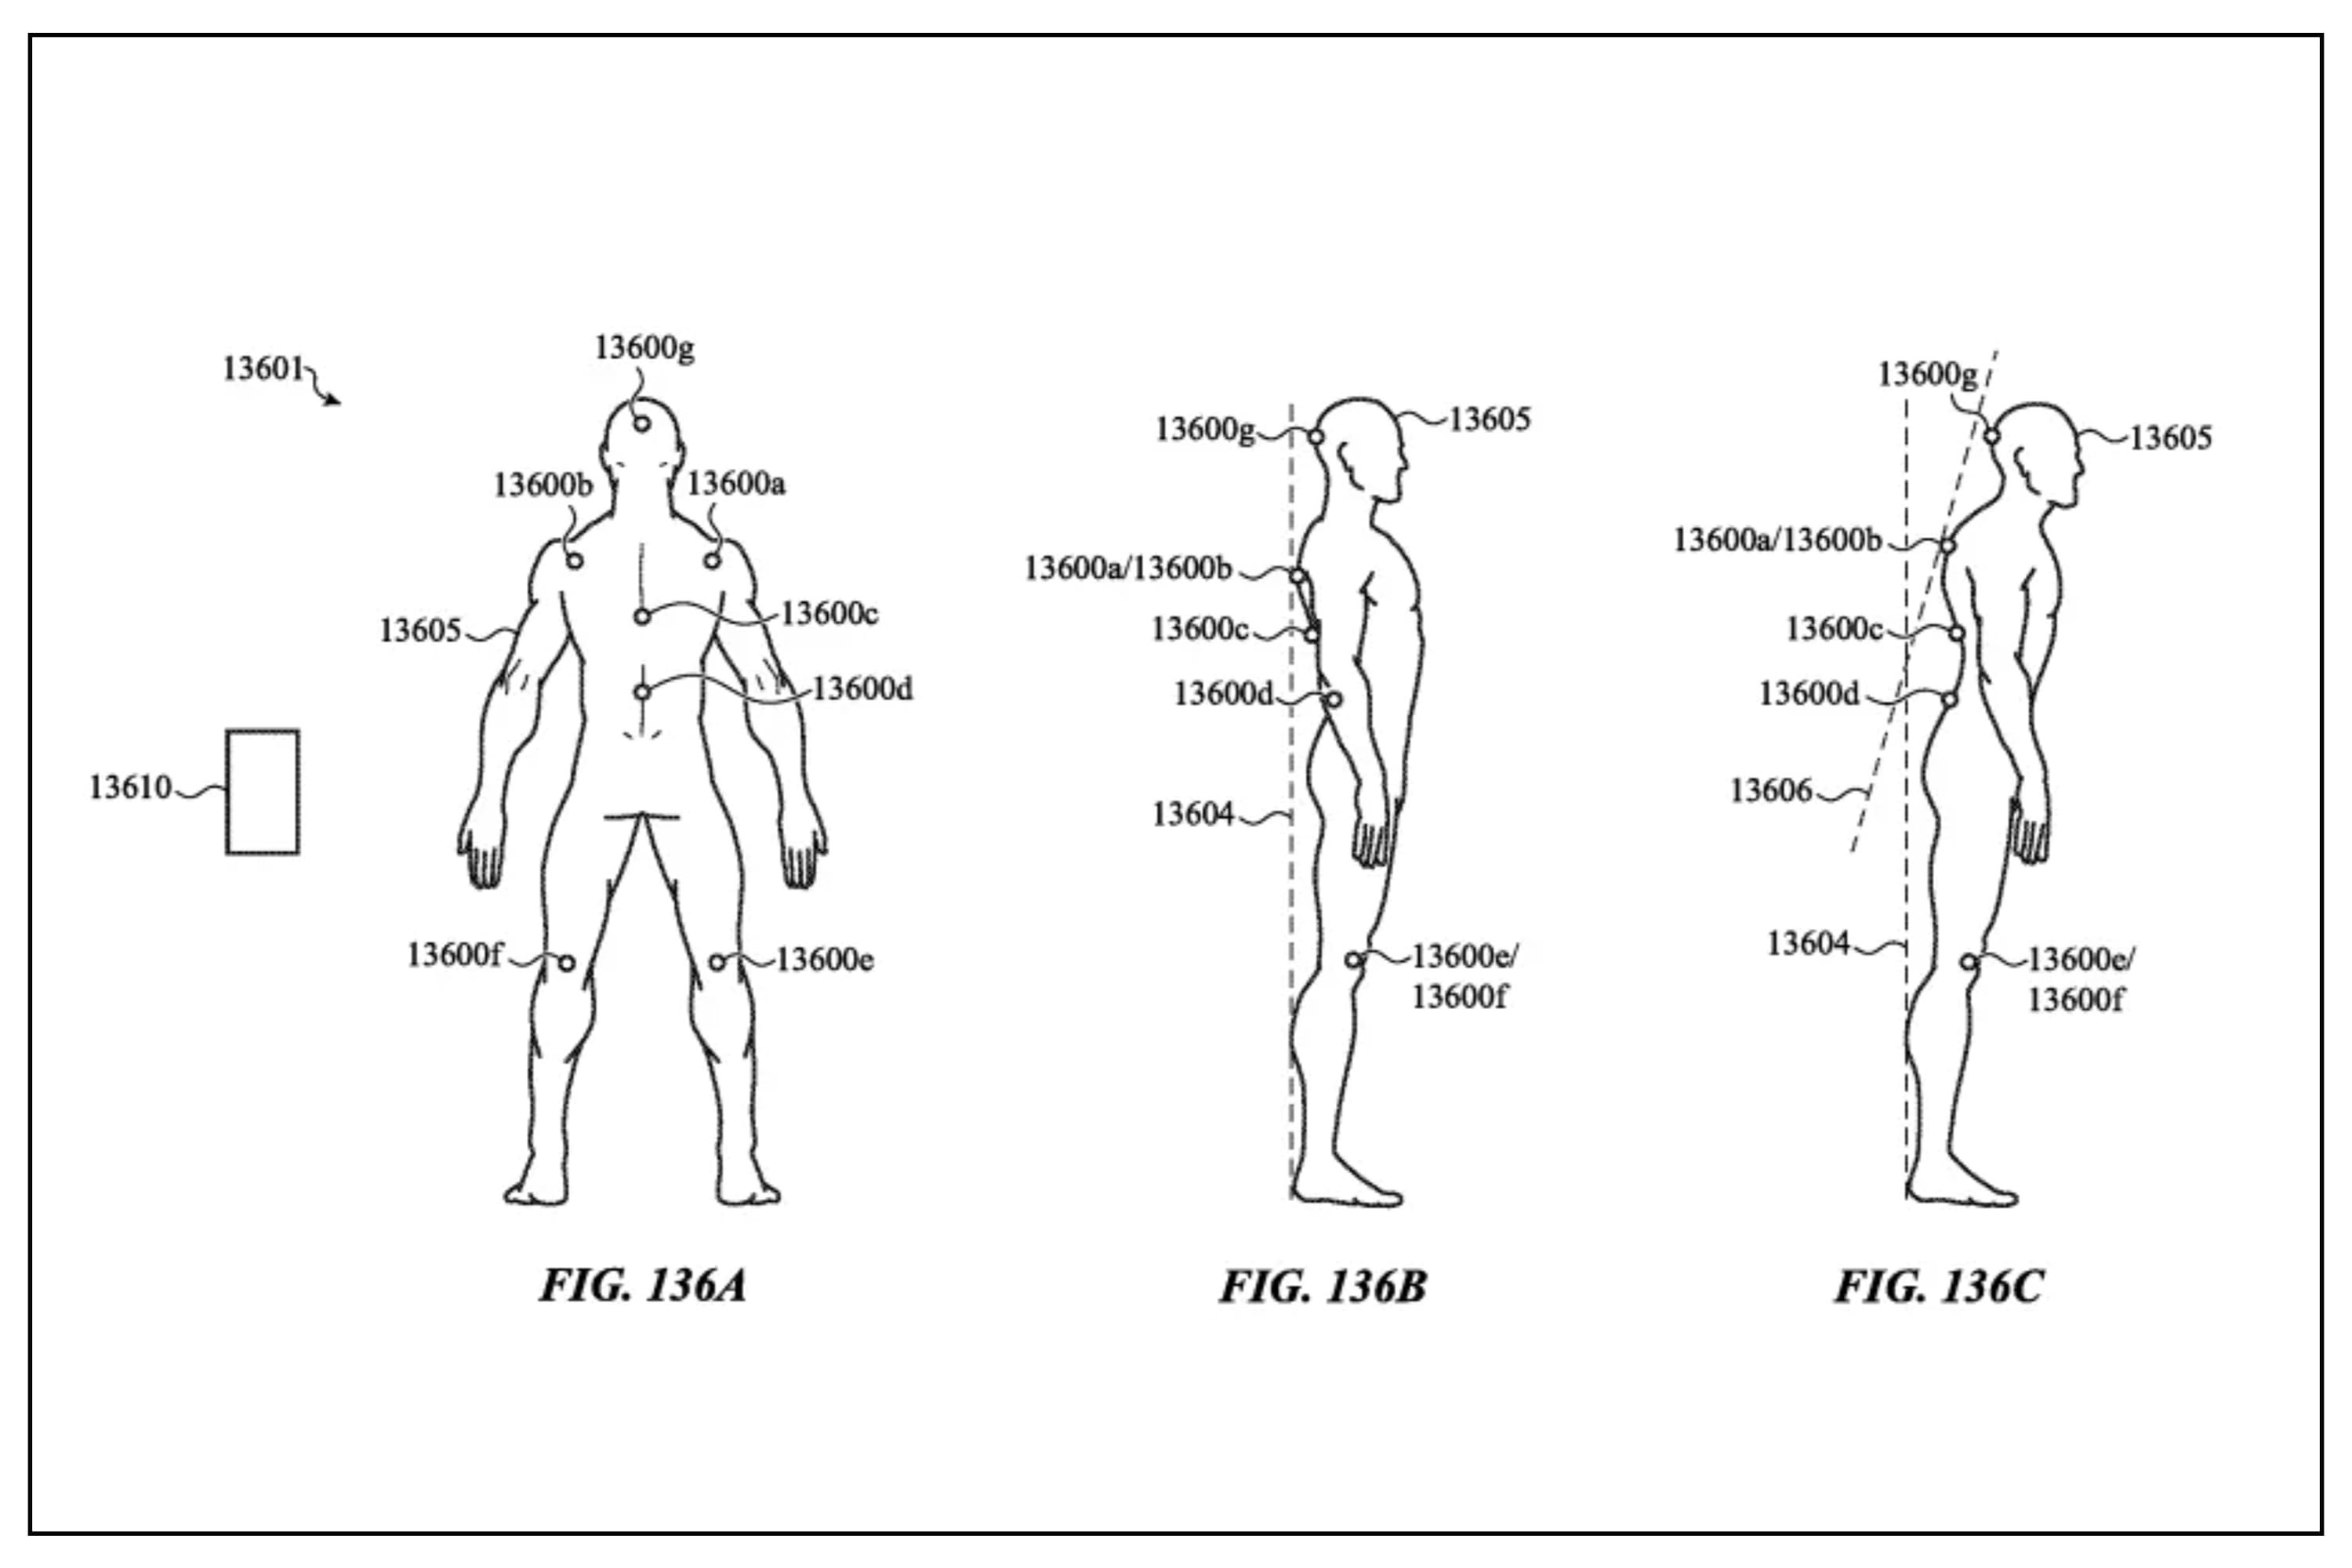 apple-airtags-the-original-plan-and-ar-gaming-and-medical-compatibilities-20201026-3